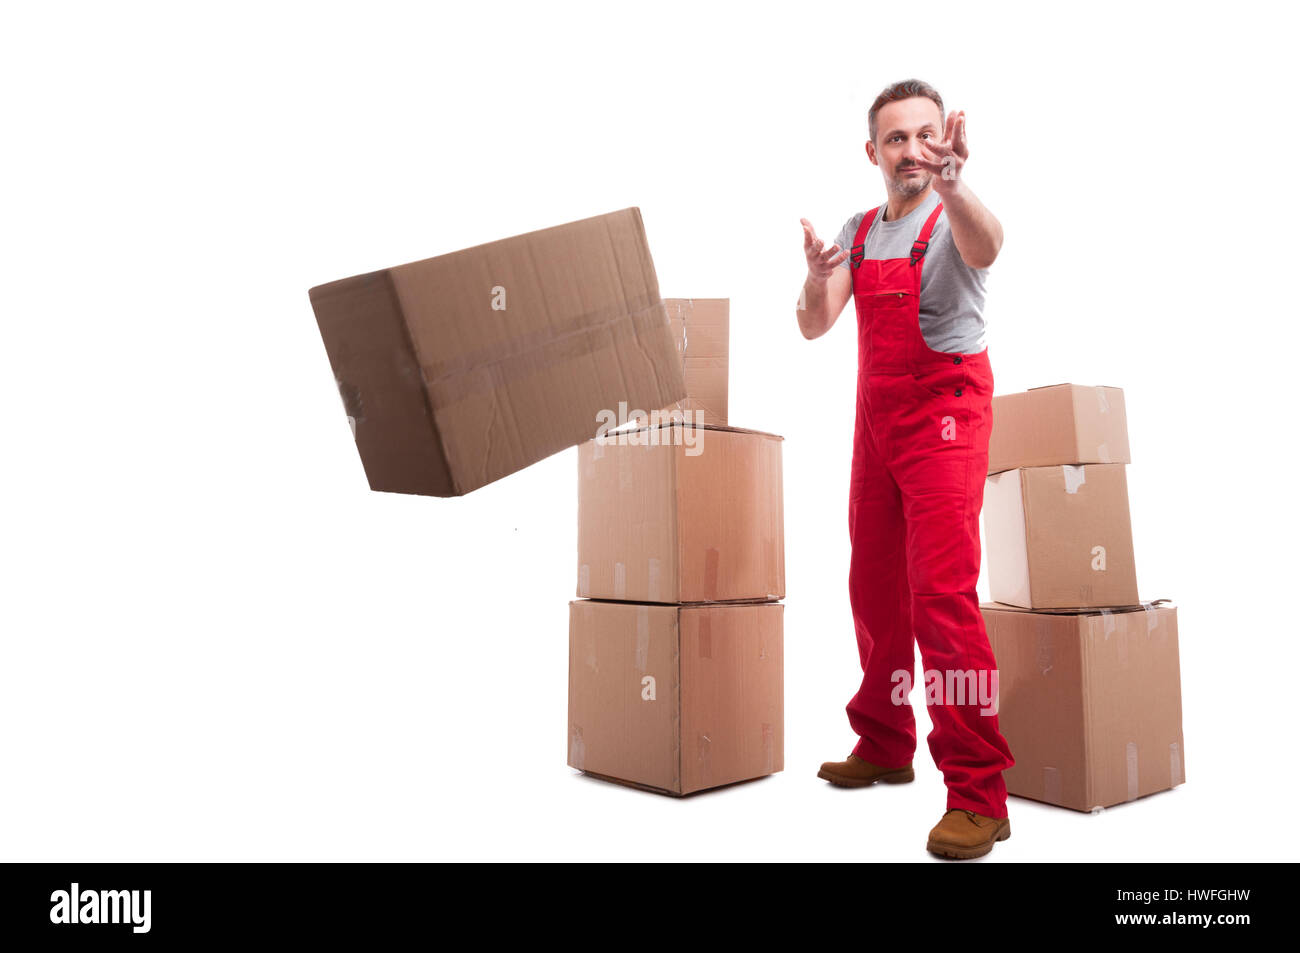 Full body mover guy throwing a cardboard box like working isolated on white background - Stock Image